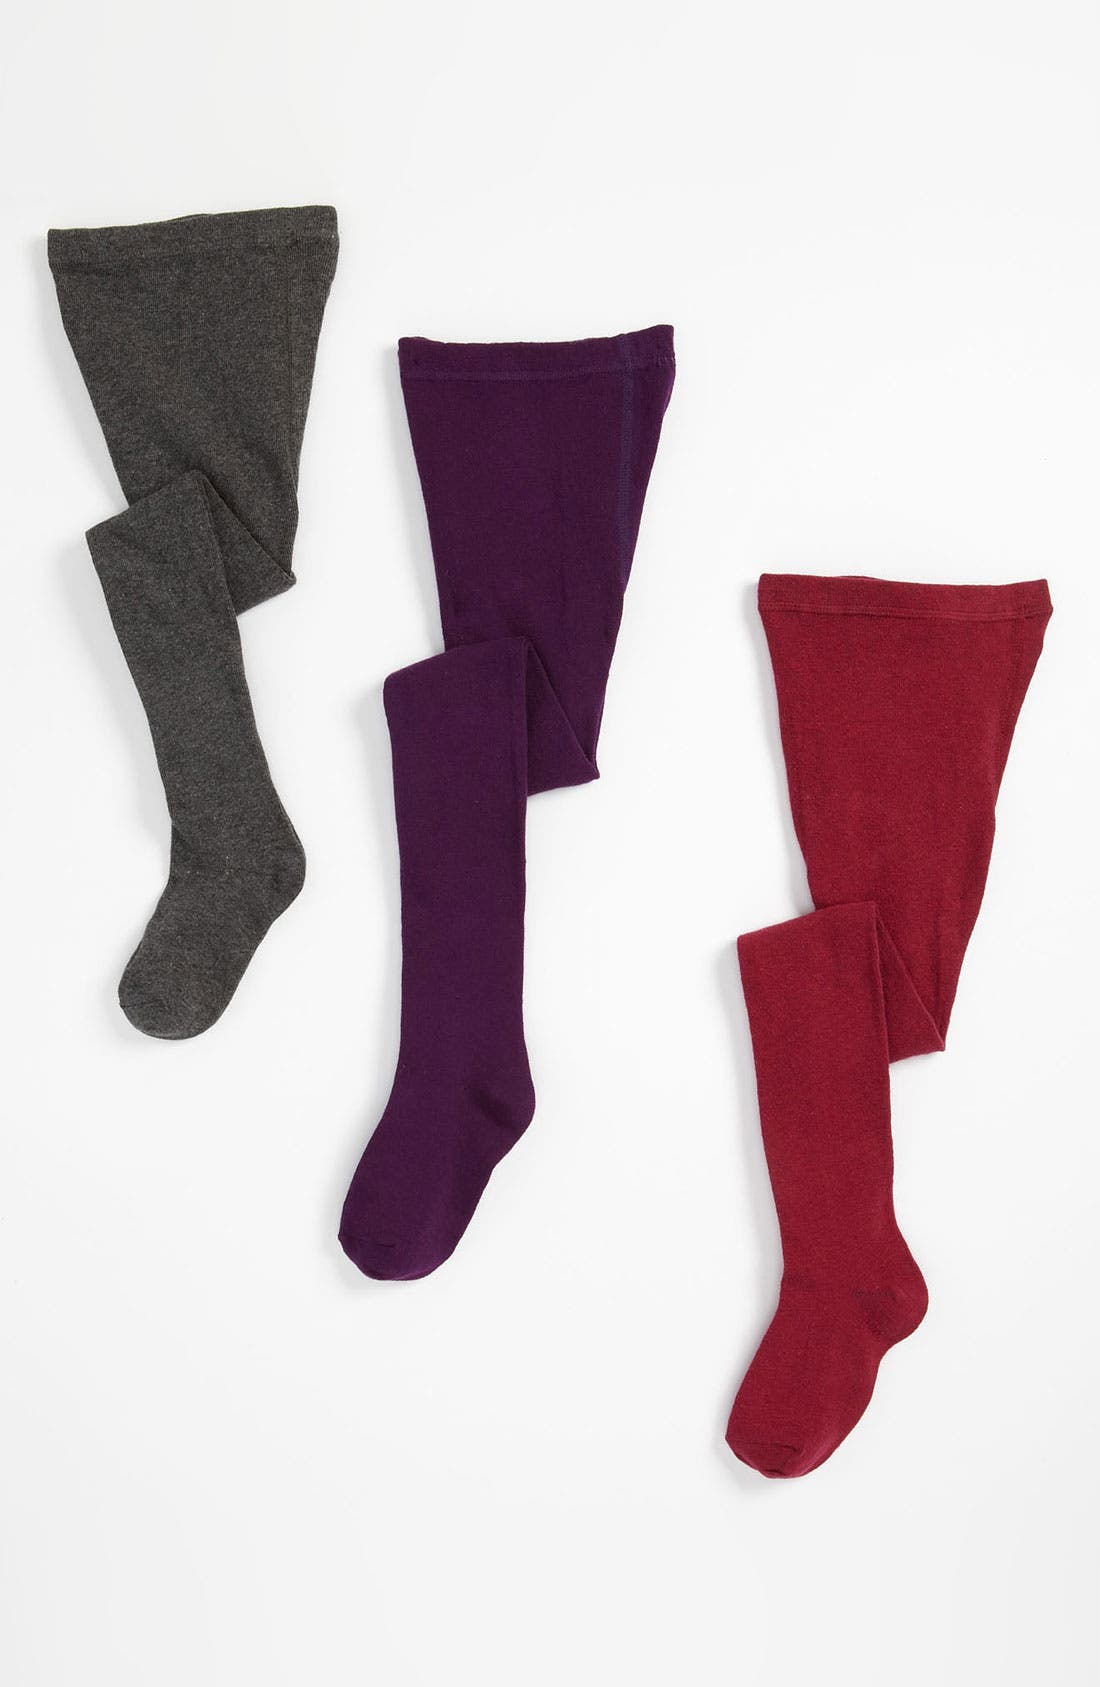 Alternate Image 1 Selected - Chinese Laundry Sweater Tights (3-Pack) (Little Girls & Big Girls)